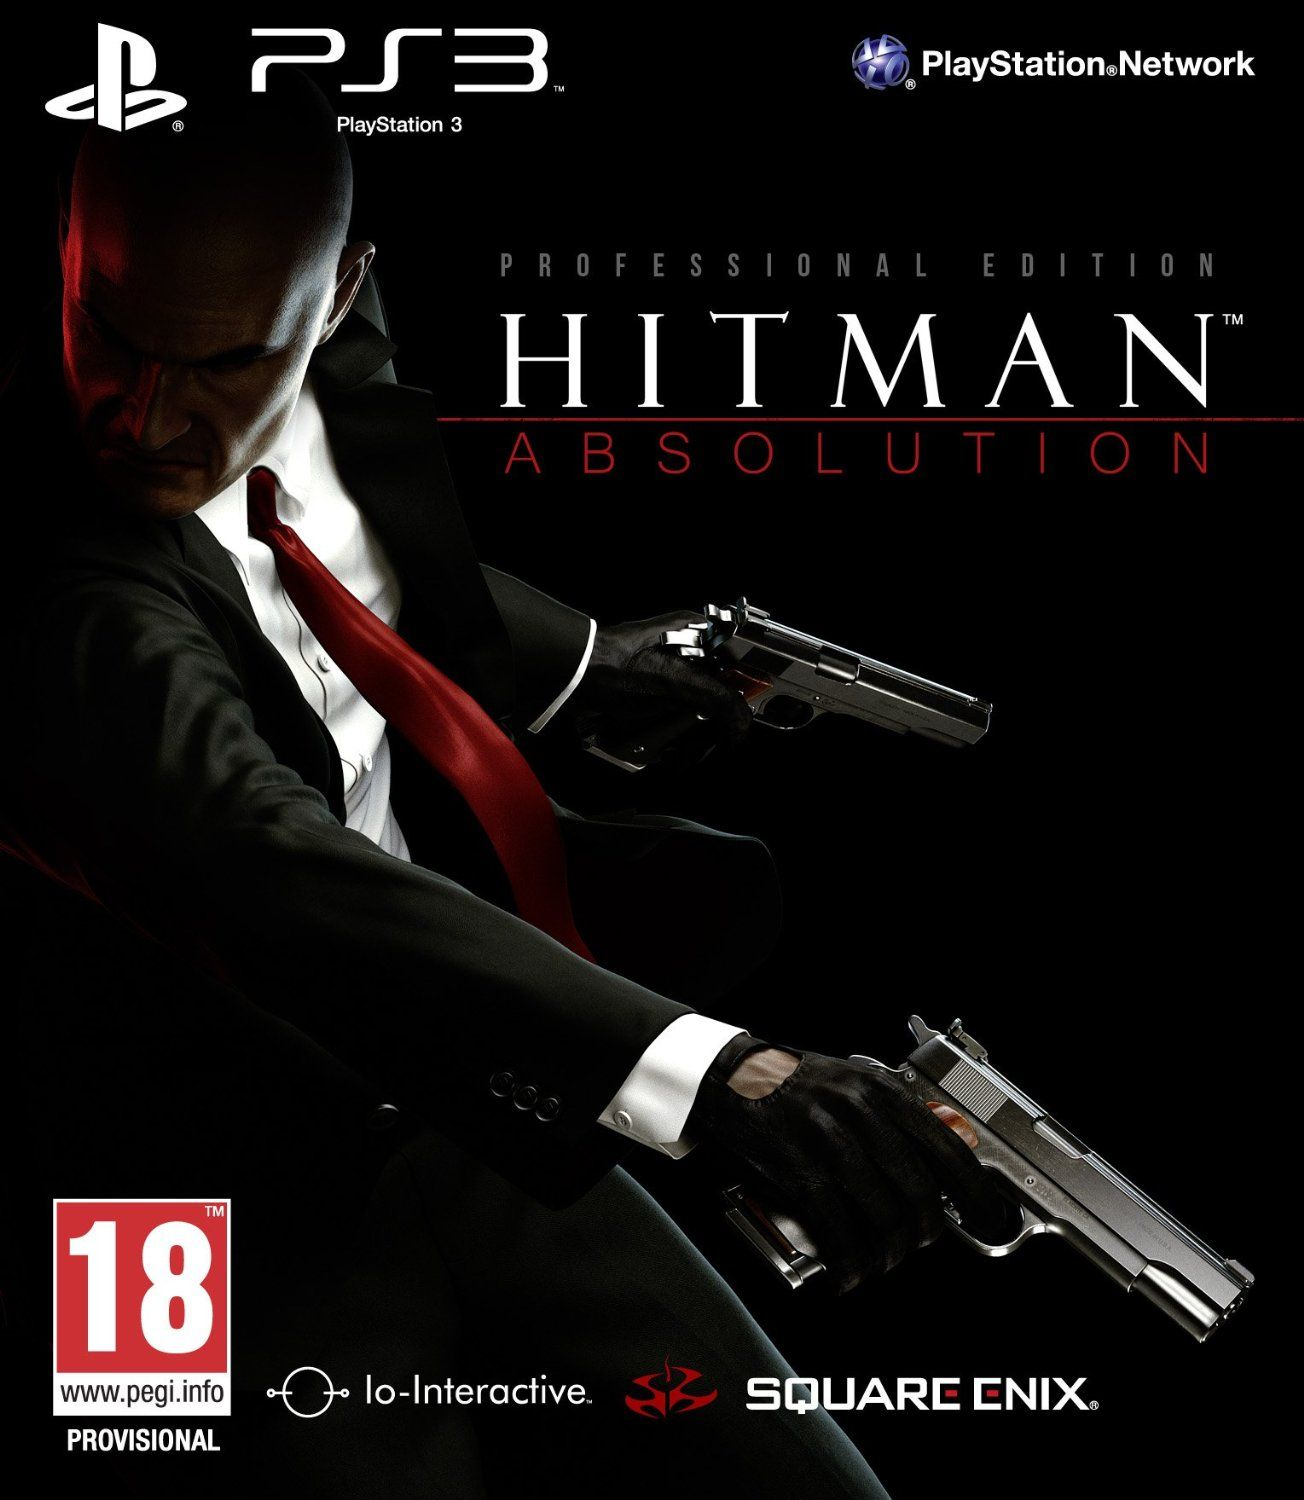 Hitman Absolution Professional Edition Ps3 Amazon Co Uk Pc Video Games Hitman Hitman Absolution Ps3 Video Games Pc